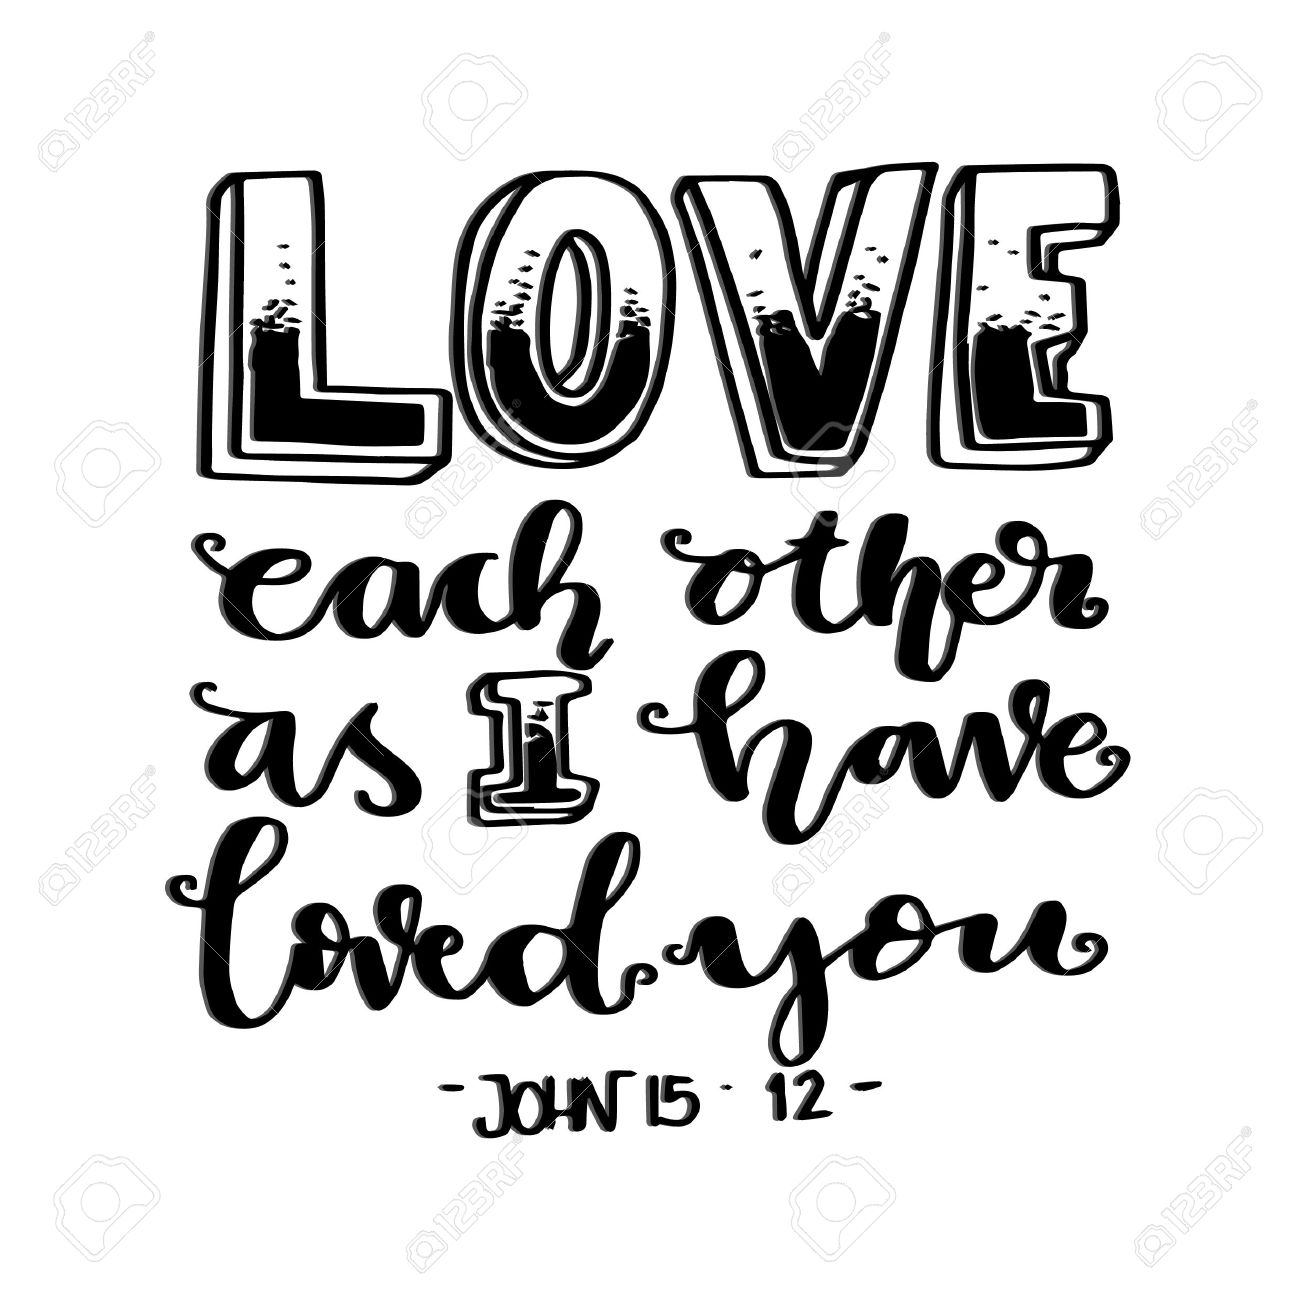 Love Each Other As I Have Loved You: Bible Verses Drawing At GetDrawings.com